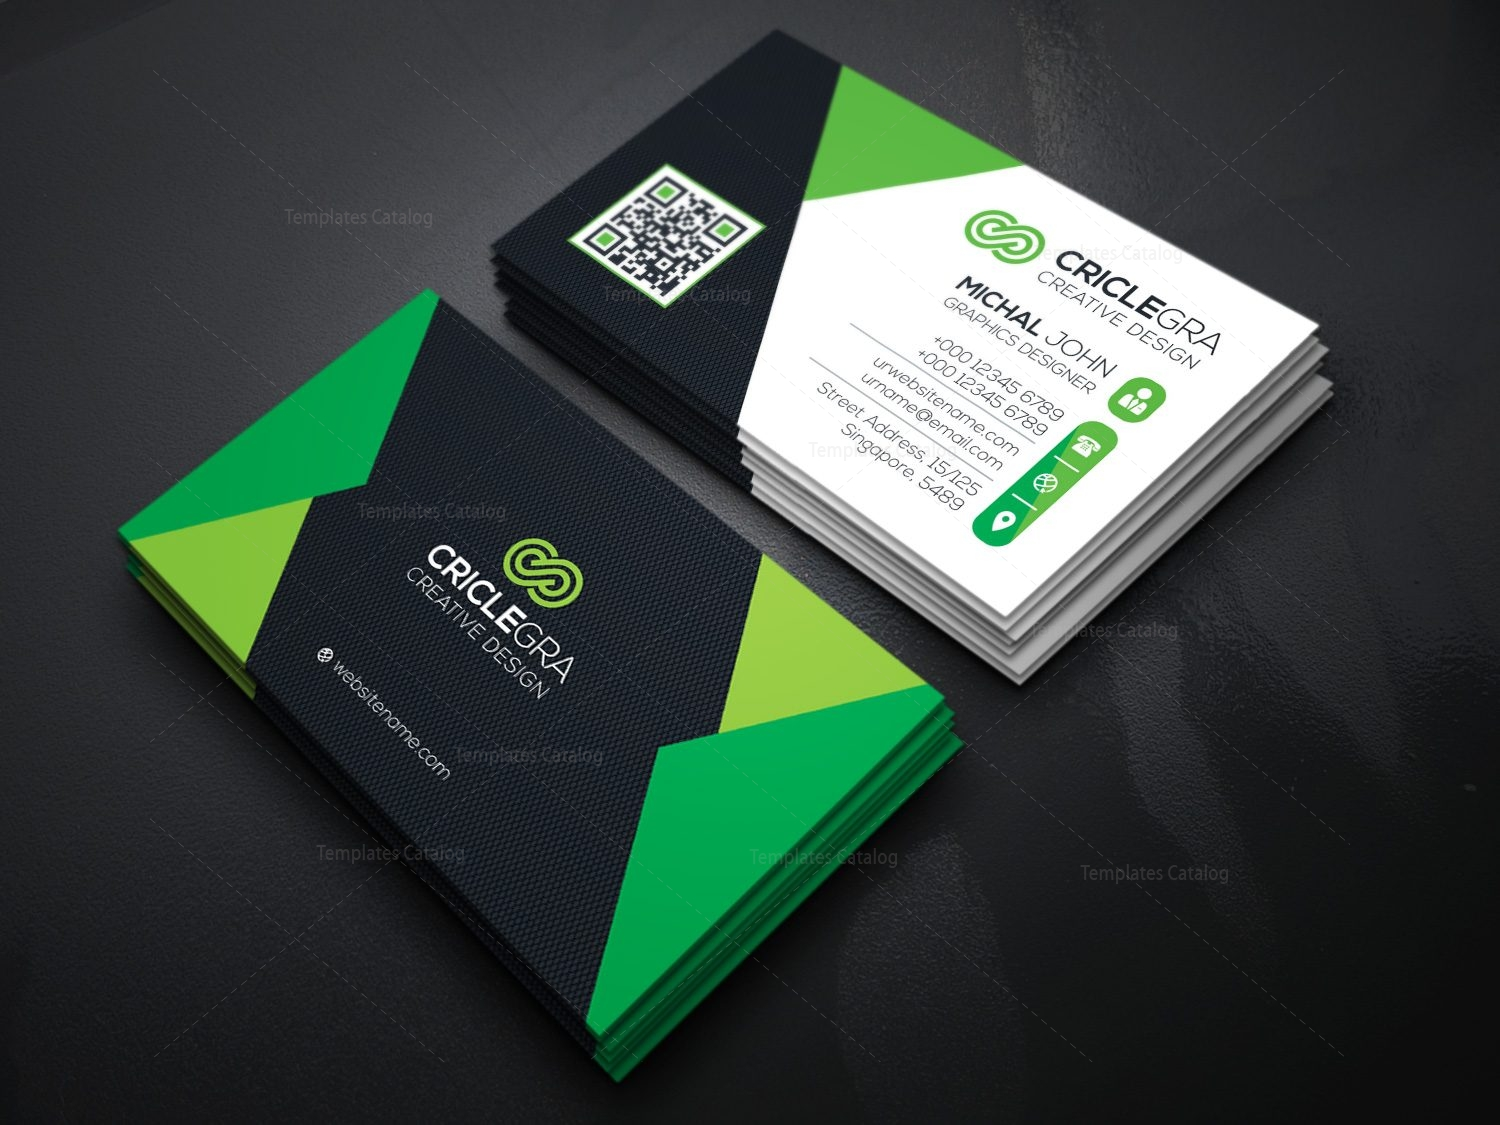 Elegant Visiting Card Template Template Catalog - Office business card template